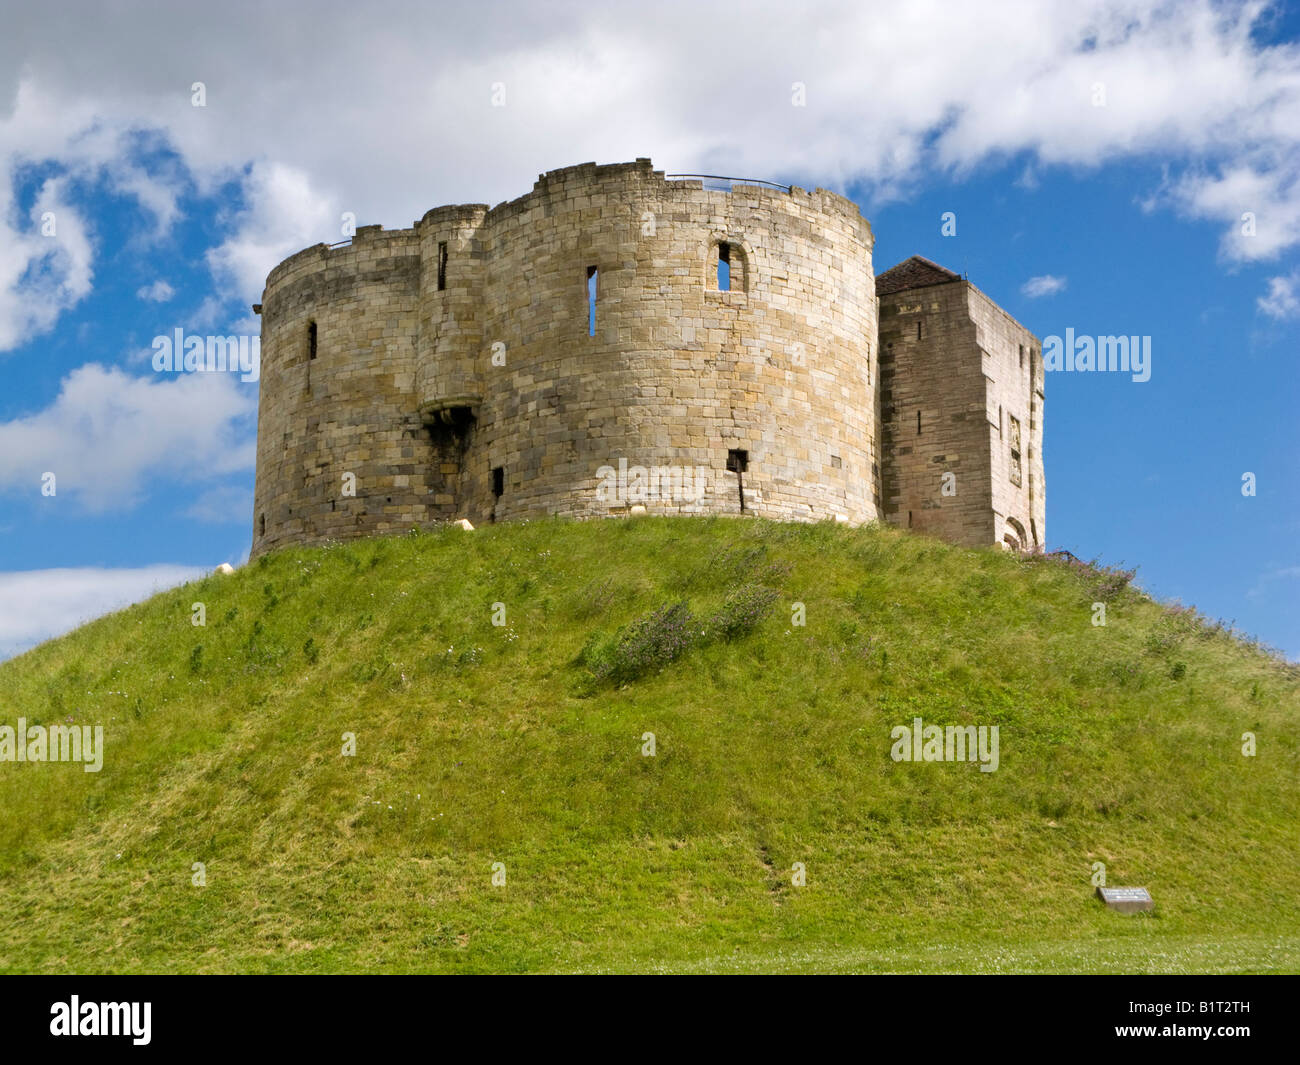 Cliffords Tower York Castle England UK - Stock Image